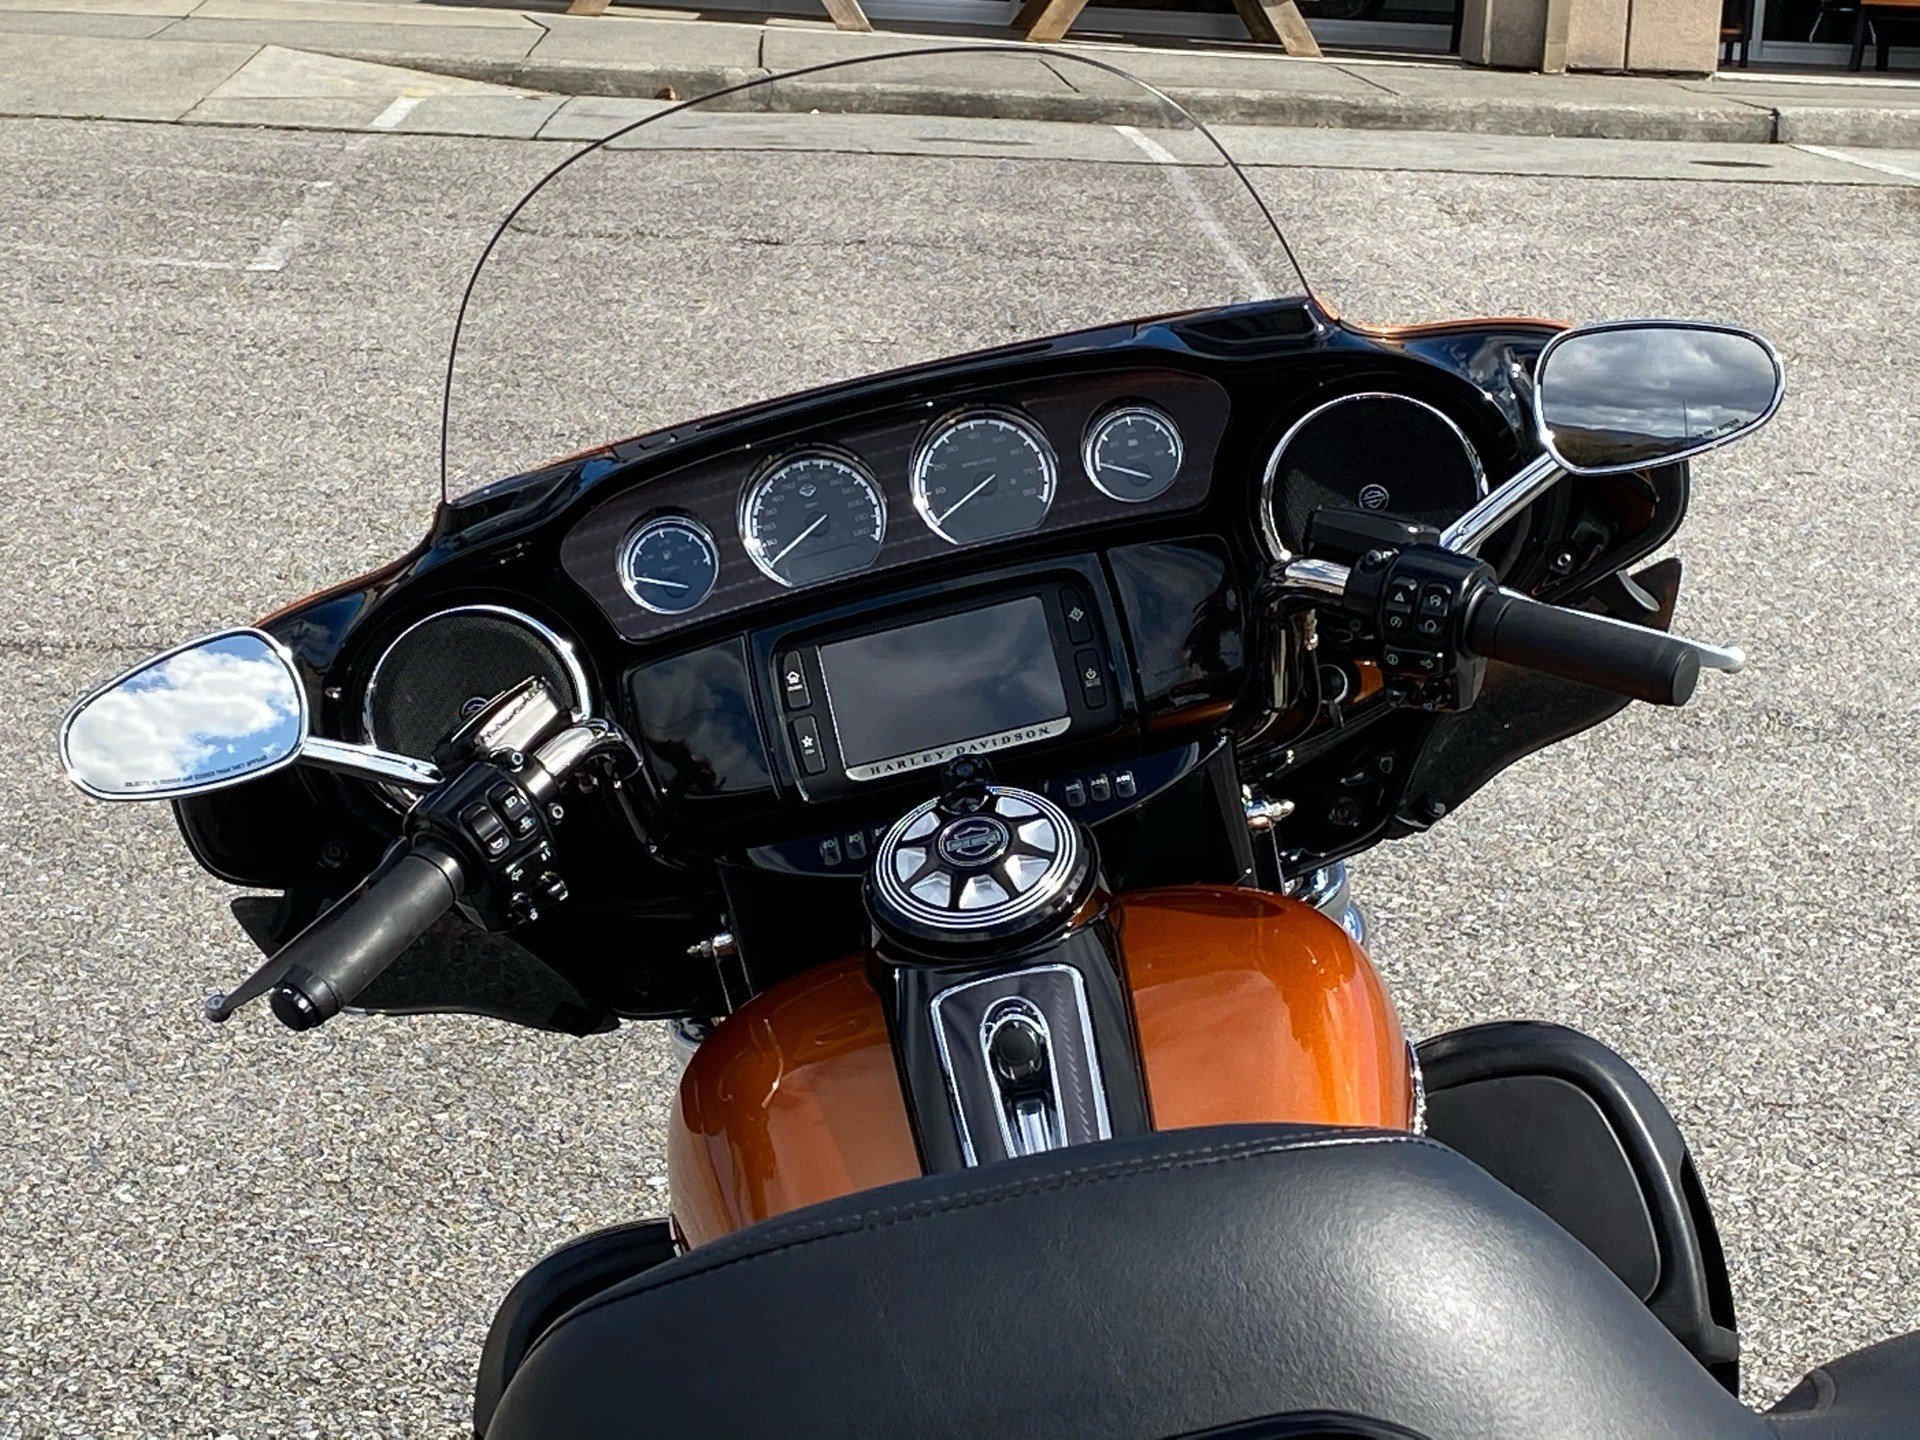 2014 Harley-Davidson Electra Glide Limited in Roanoke, Virginia - Photo 5